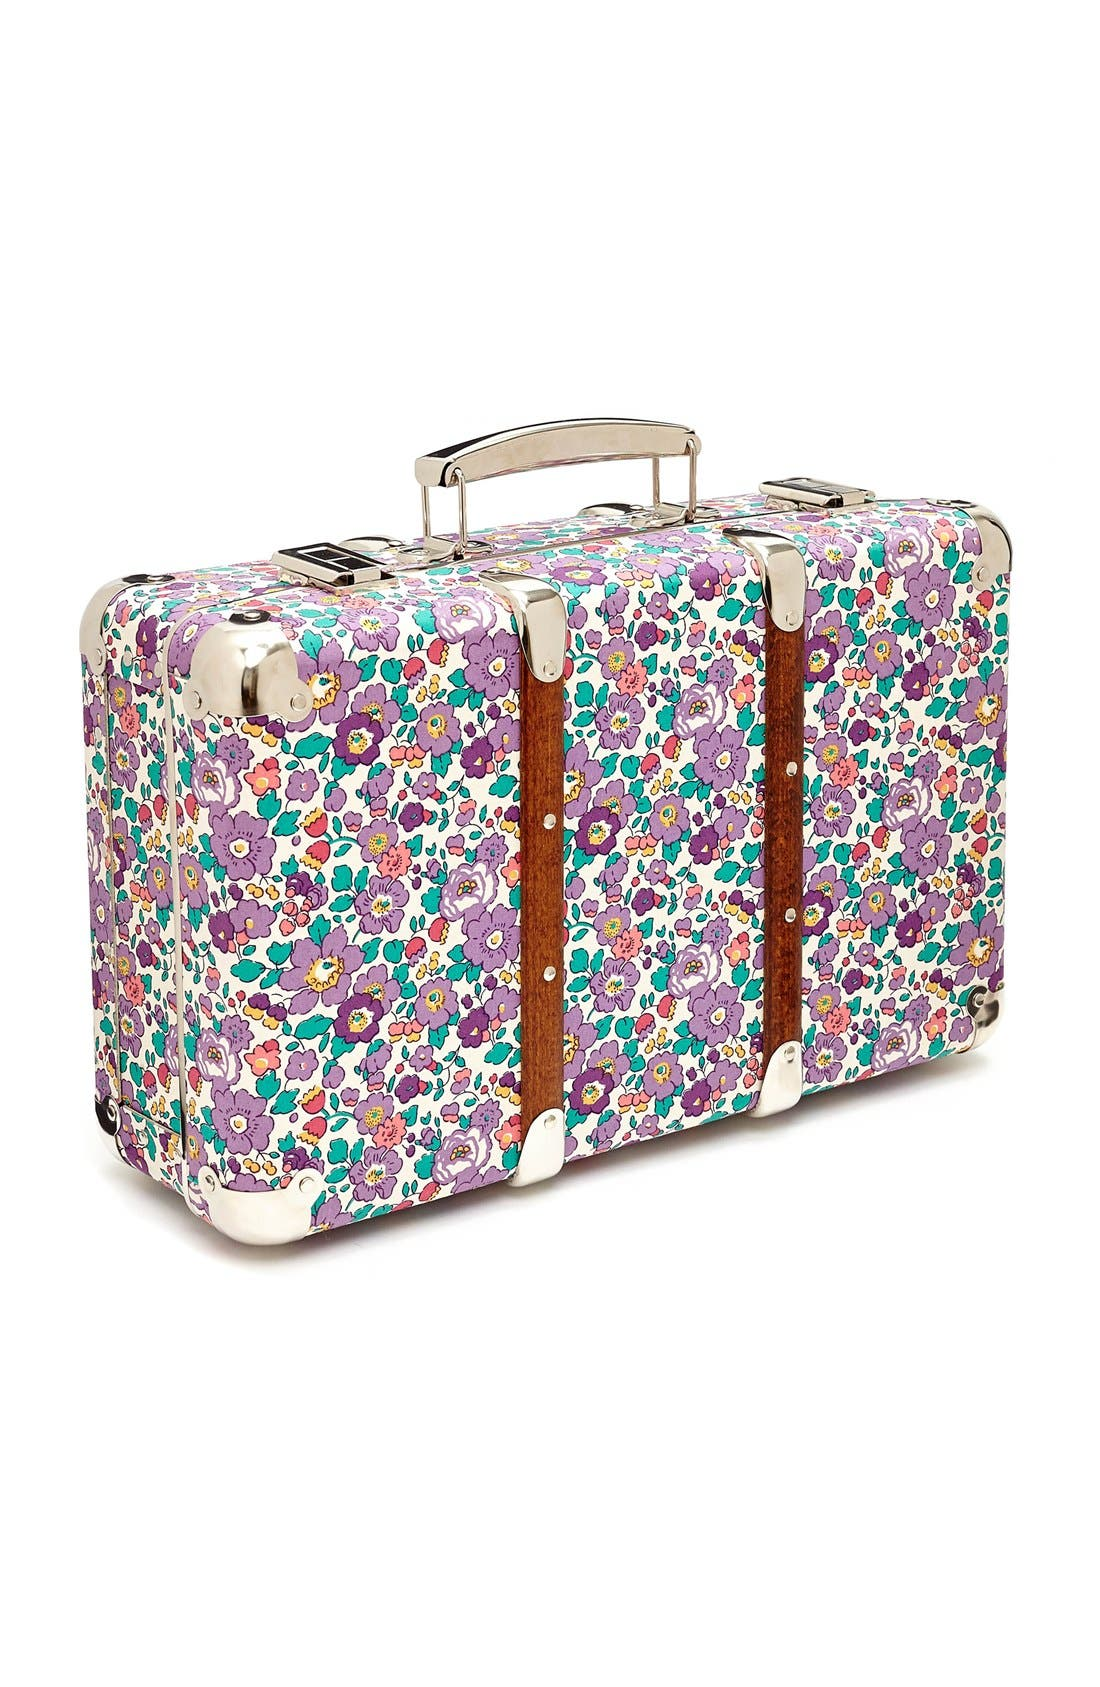 Alternate Image 1 Selected - Flowers of Liberty Floral Print Suitcase